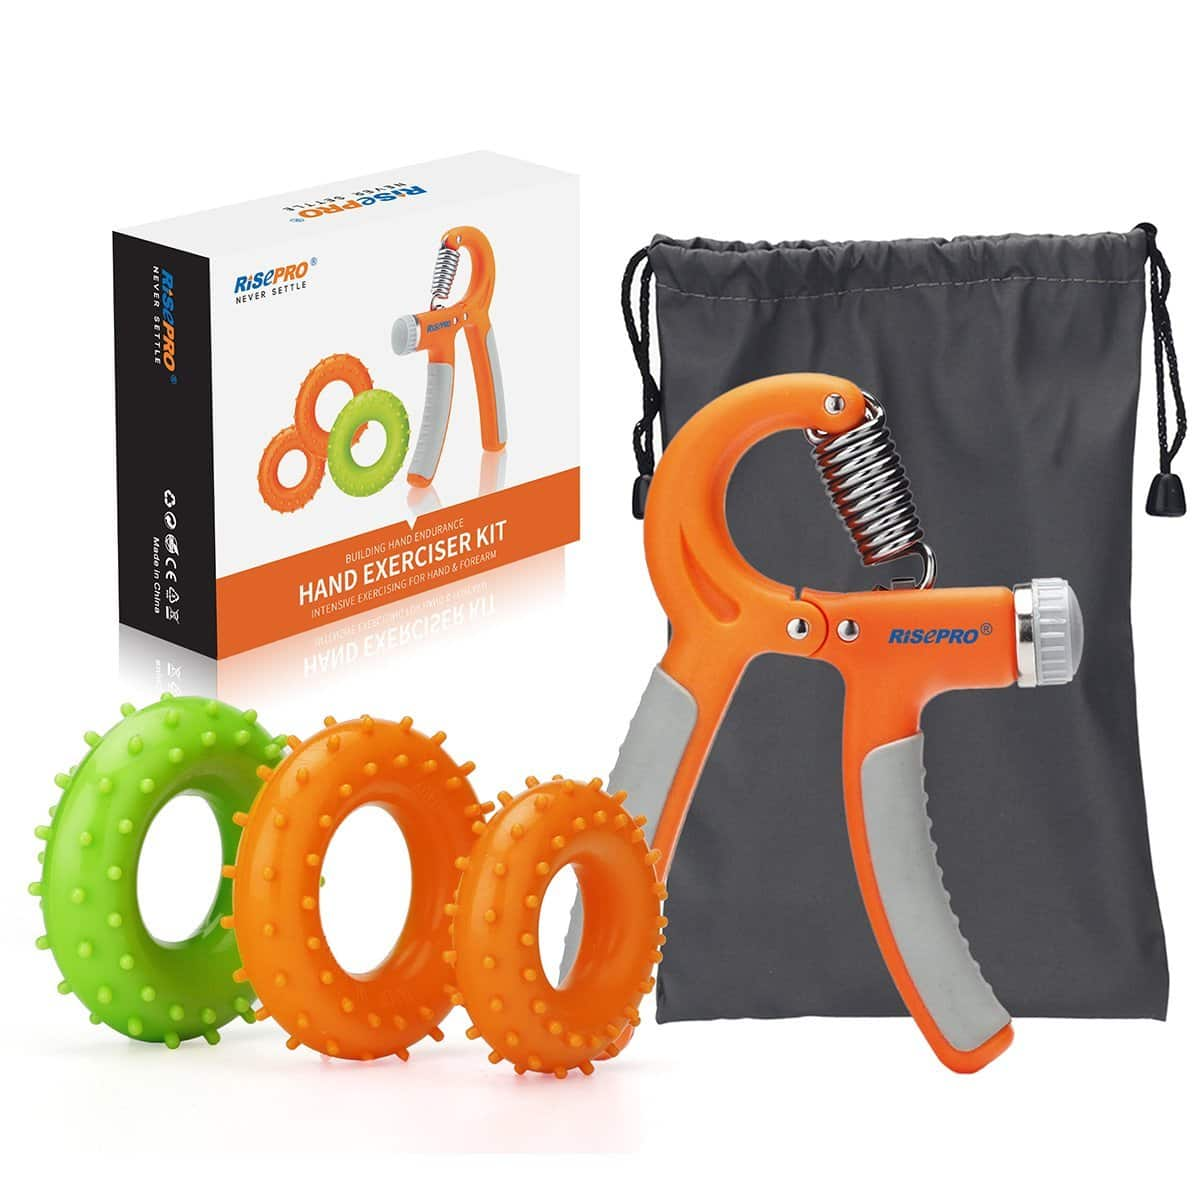 Hand Strengthener - Exerciser - Adjustable Resistance - Set of 4 with 3 grip rings @Amazon $5